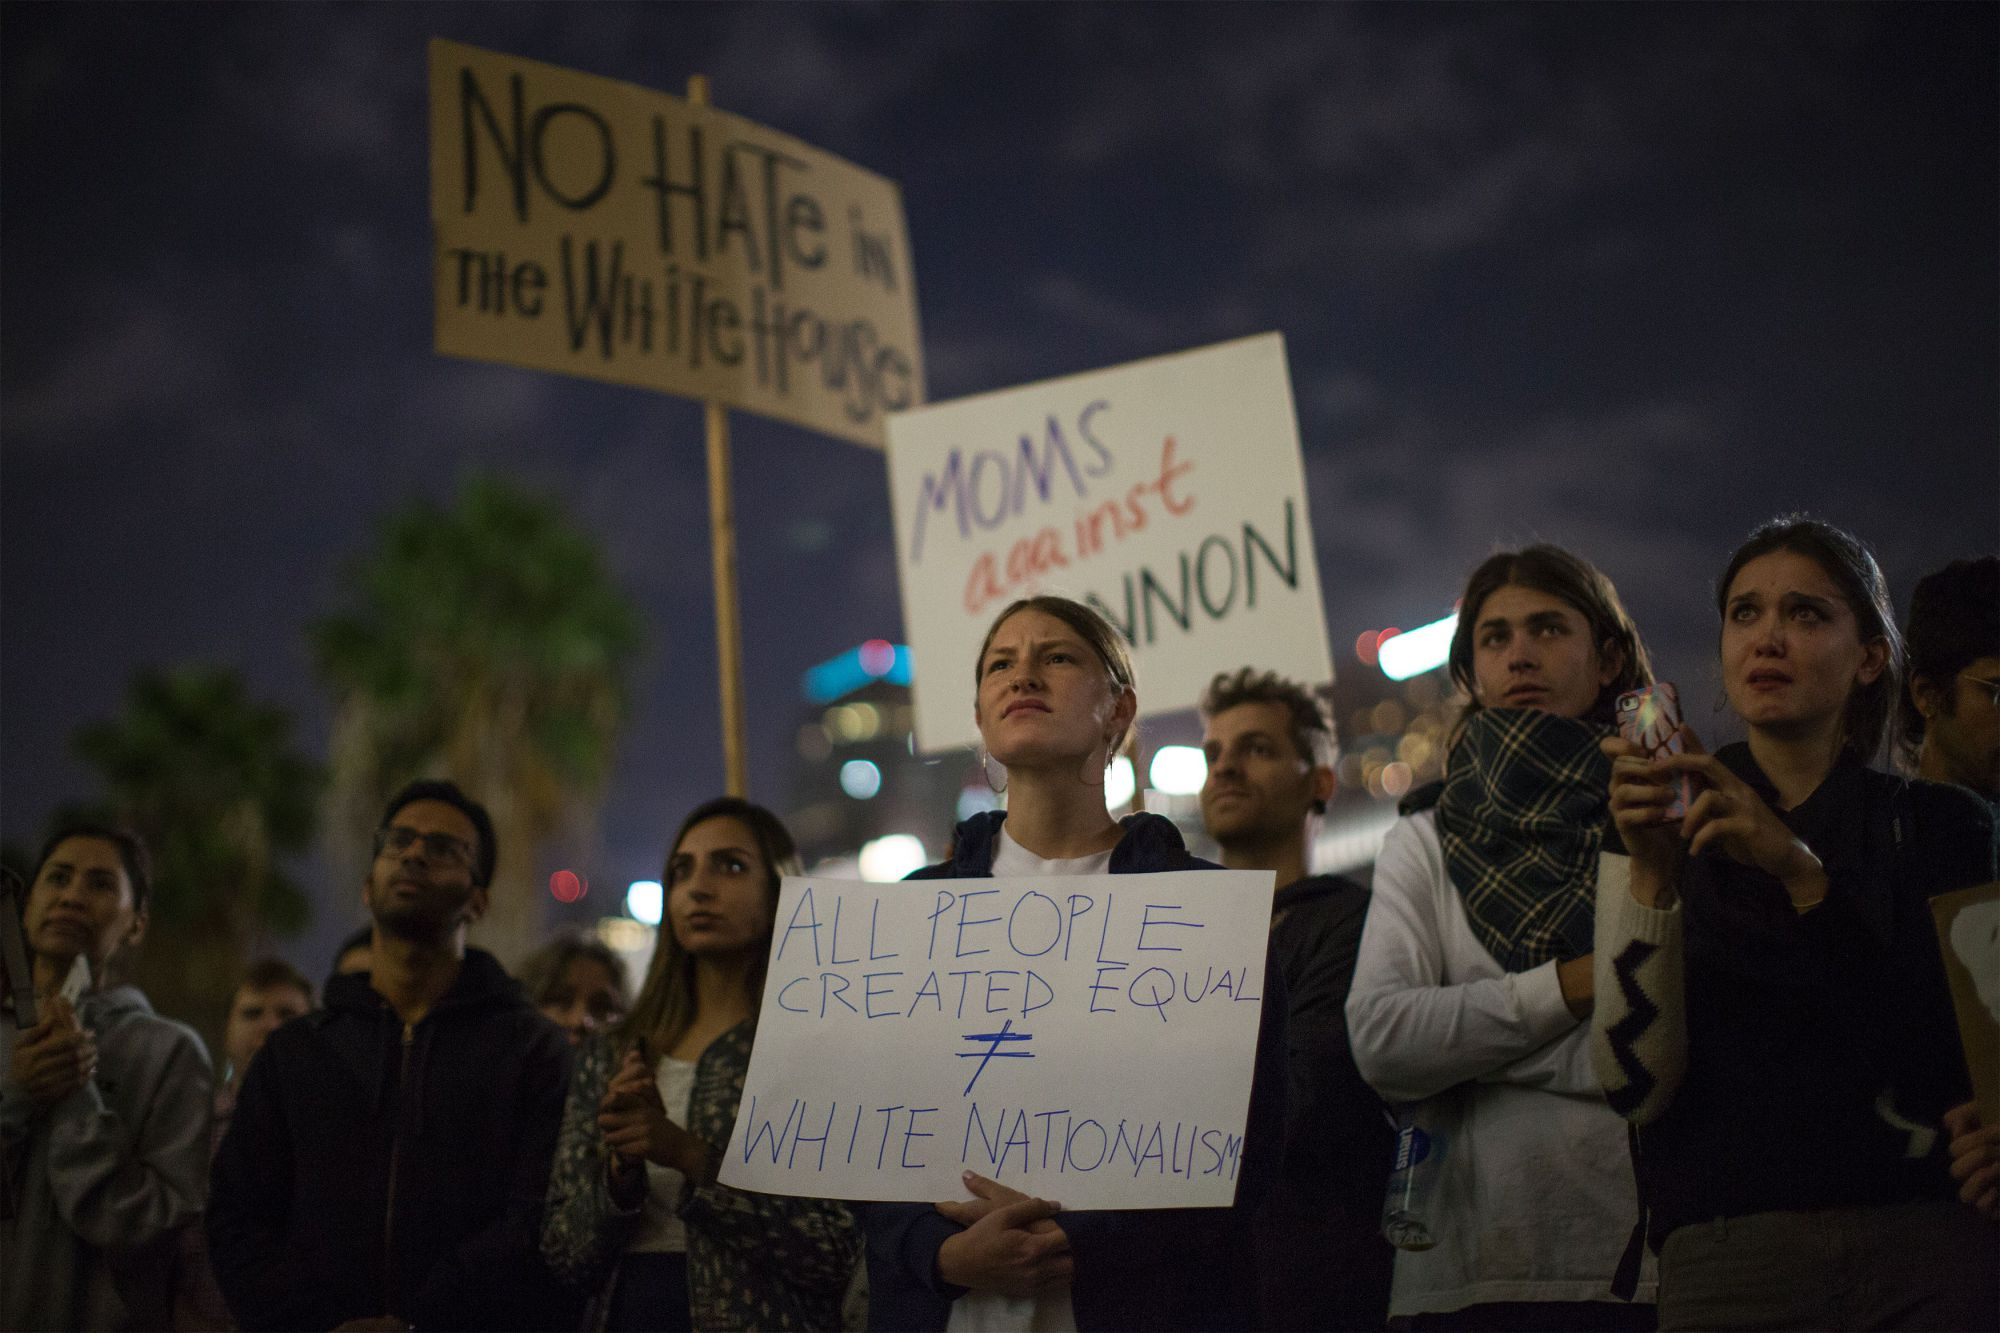 People outside Los Angeles City Hall in November protest Donald Trump's appointment of former Breitbart News head Steve Bannon, a white nationalist alt-right media mogul, to be chief strategist of the White House. | AFP-JIJI